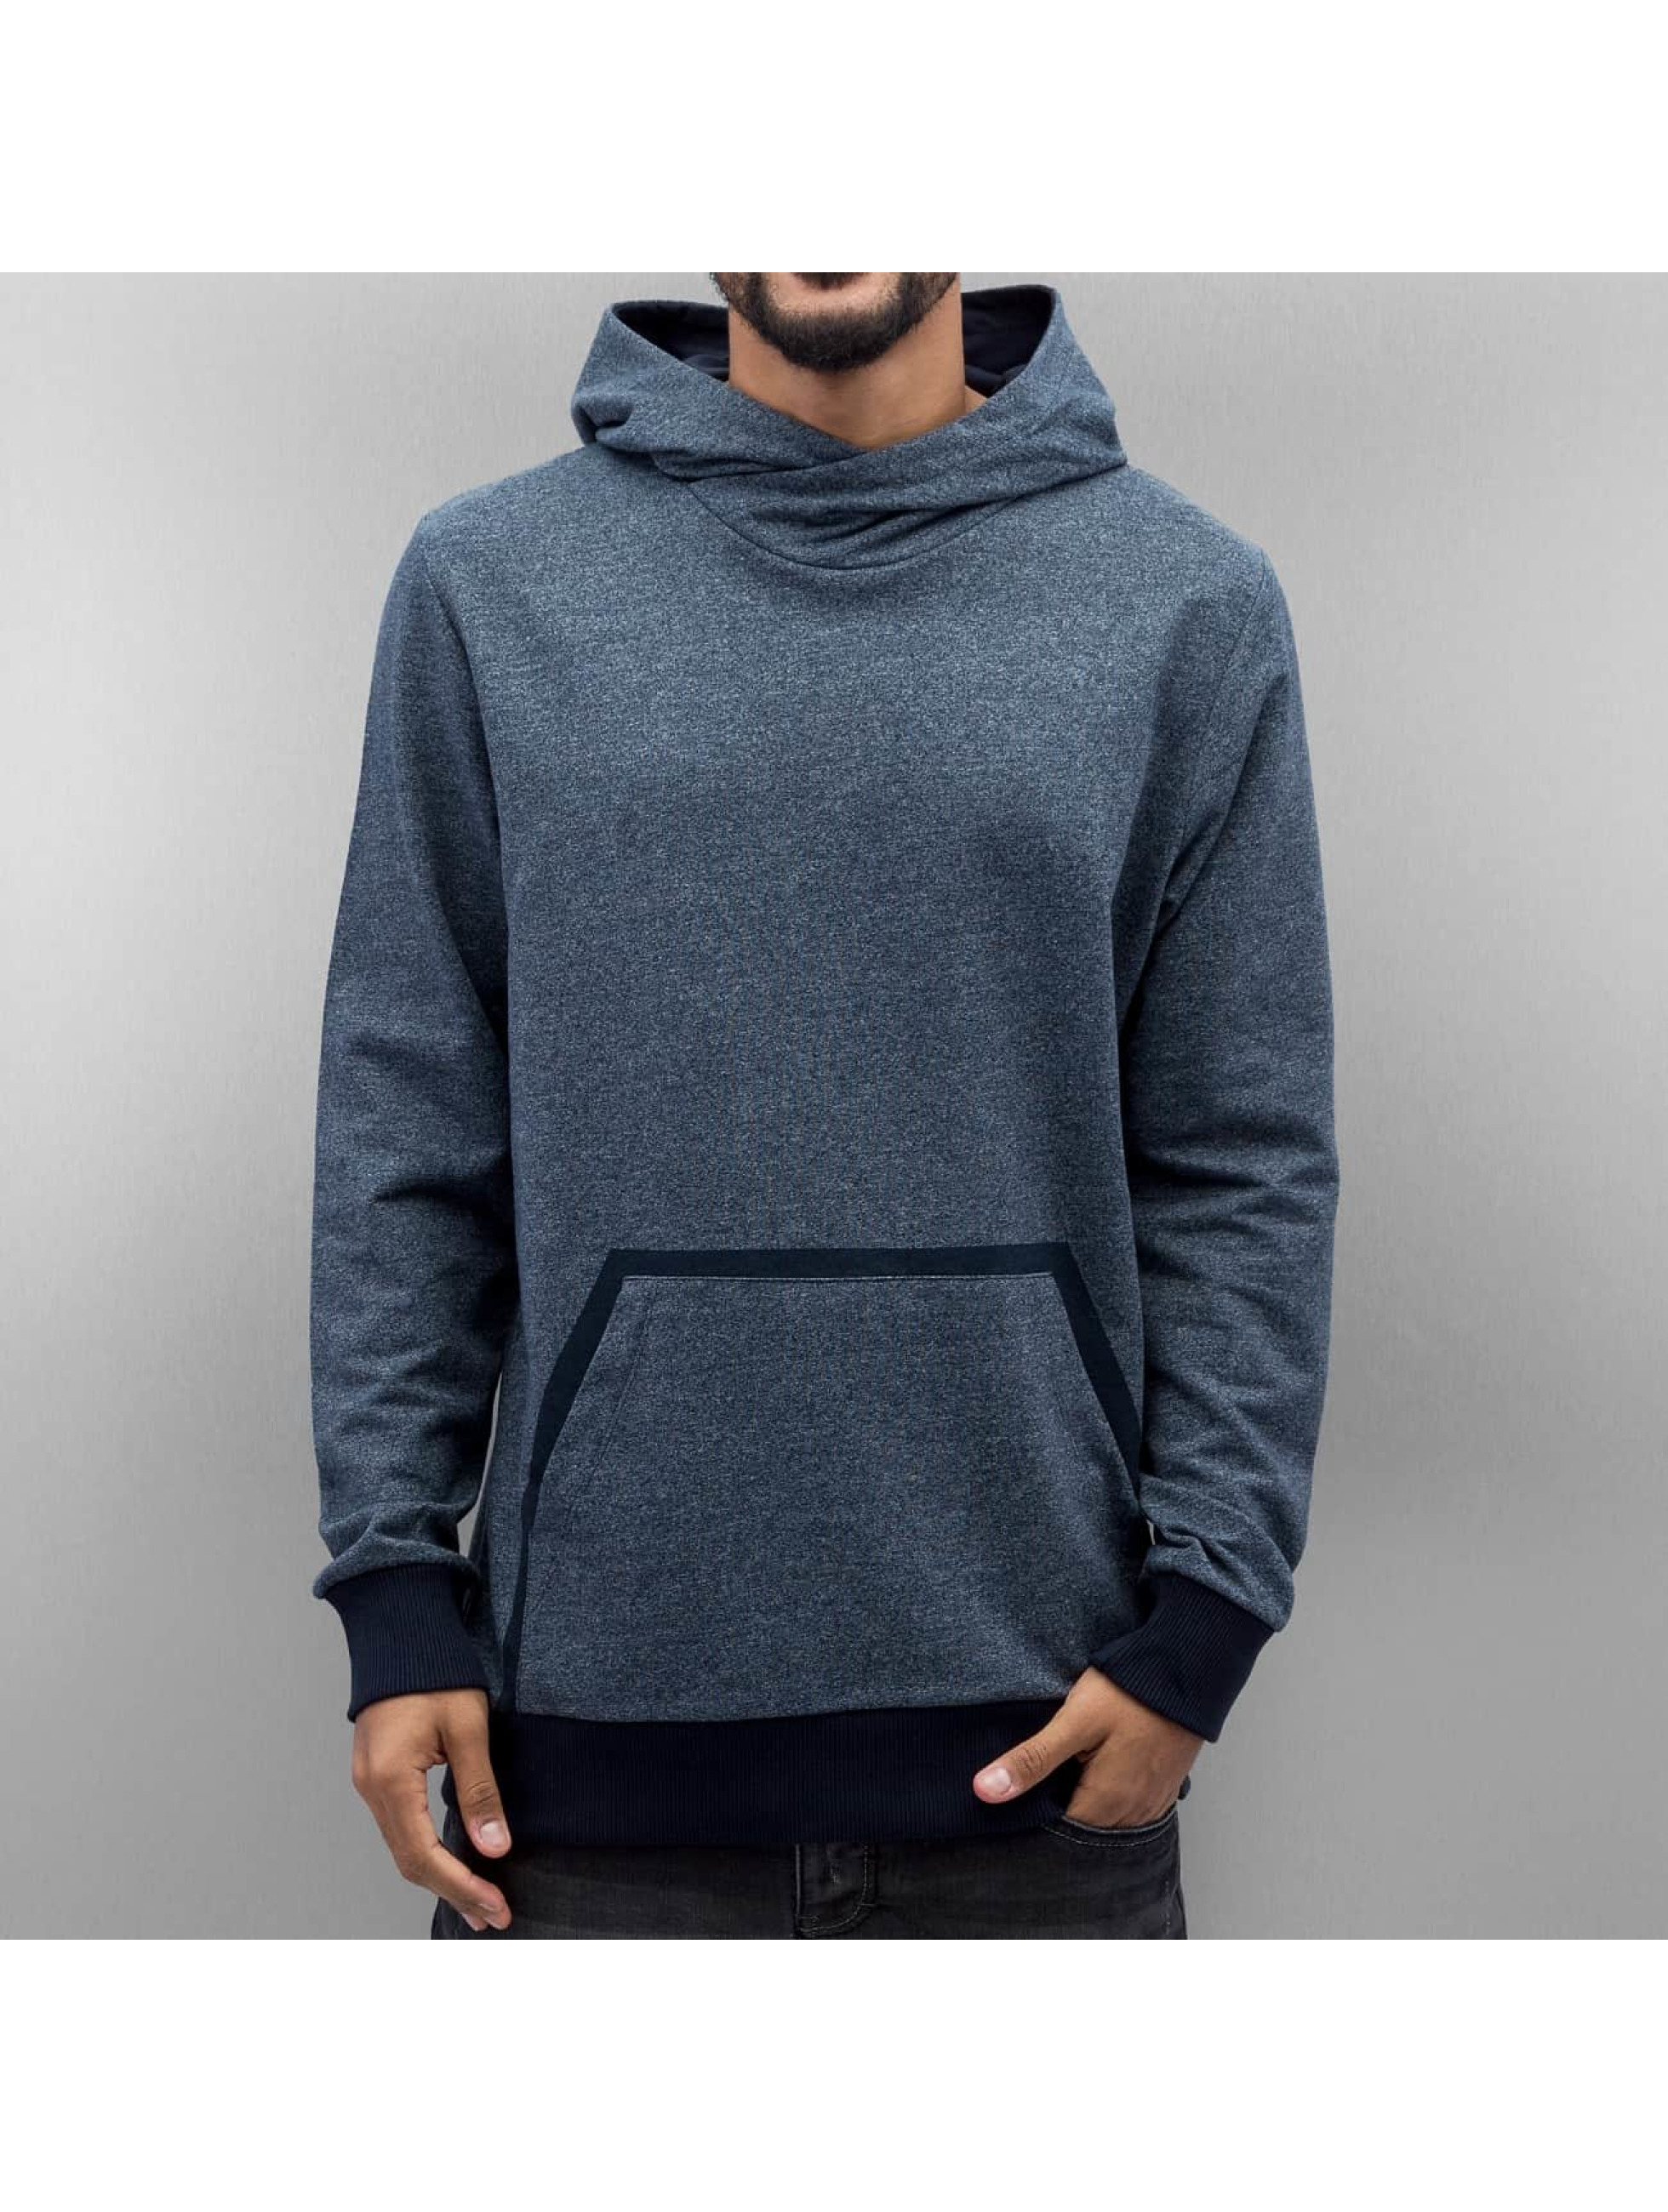 Jack & Jones Männer Hoody jjcoSwallen Sweat in blau Sale Angebote Egloffstein